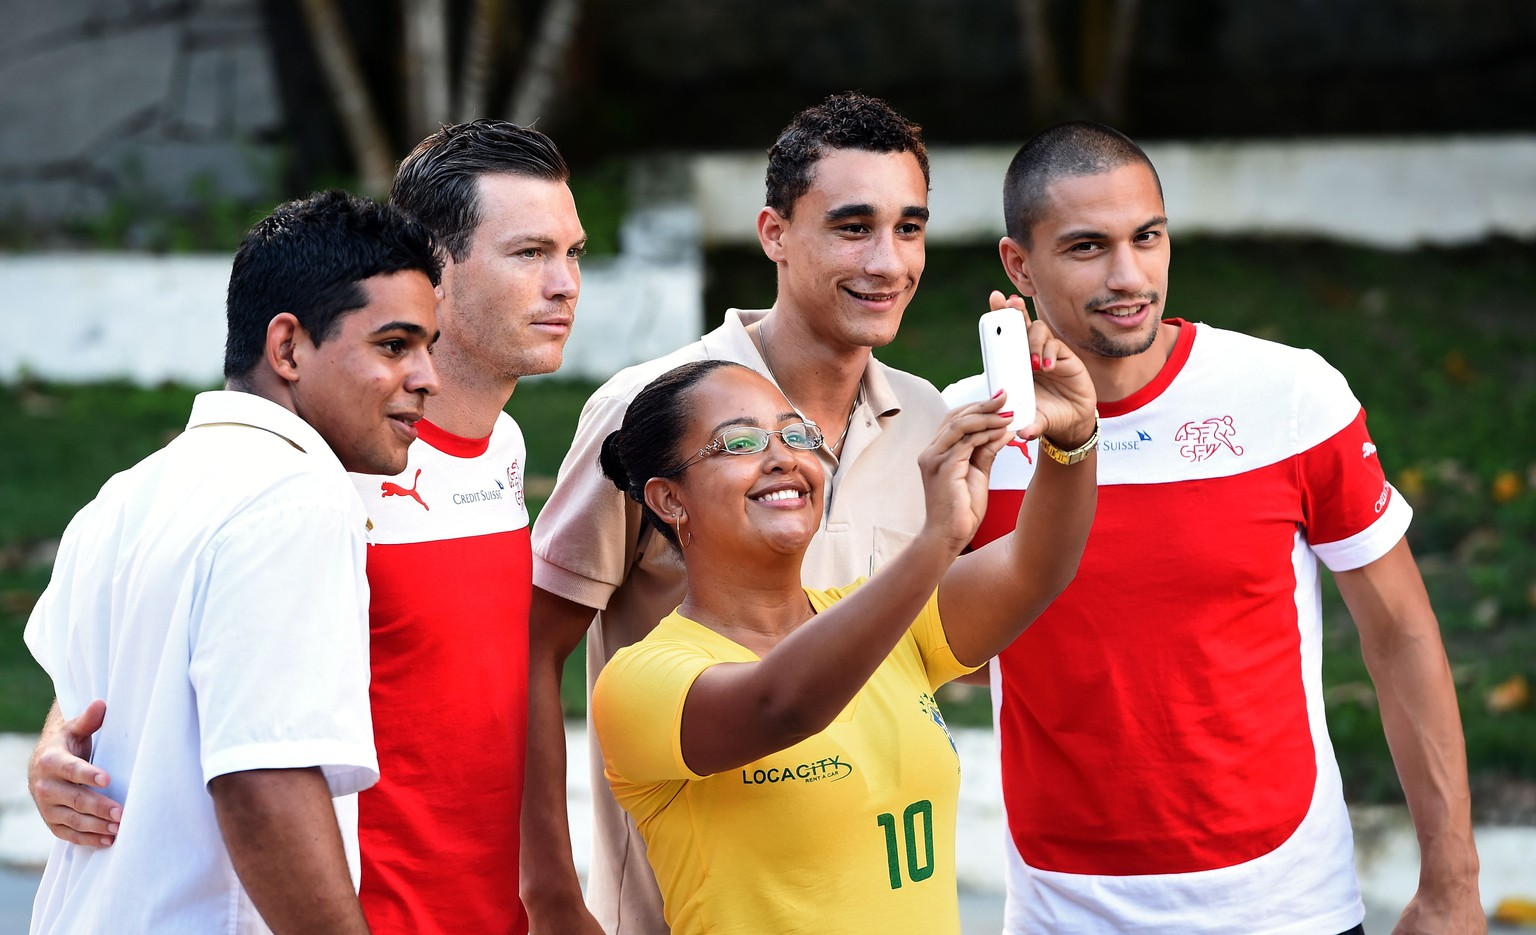 Switzerland's midfielder and captain Goekhan Inler (R) and Switzerland's defender Stephan Lichtsteiner (2ndL) pose with football fans after a press conference at the Praia Hotel in Porto Seguro on June 10, 2014, ahead of the 2014 FIFA World Cup football tournament in Brazil.   AFP PHOTO/ ANNE-CHRISTINE POUJOULAT